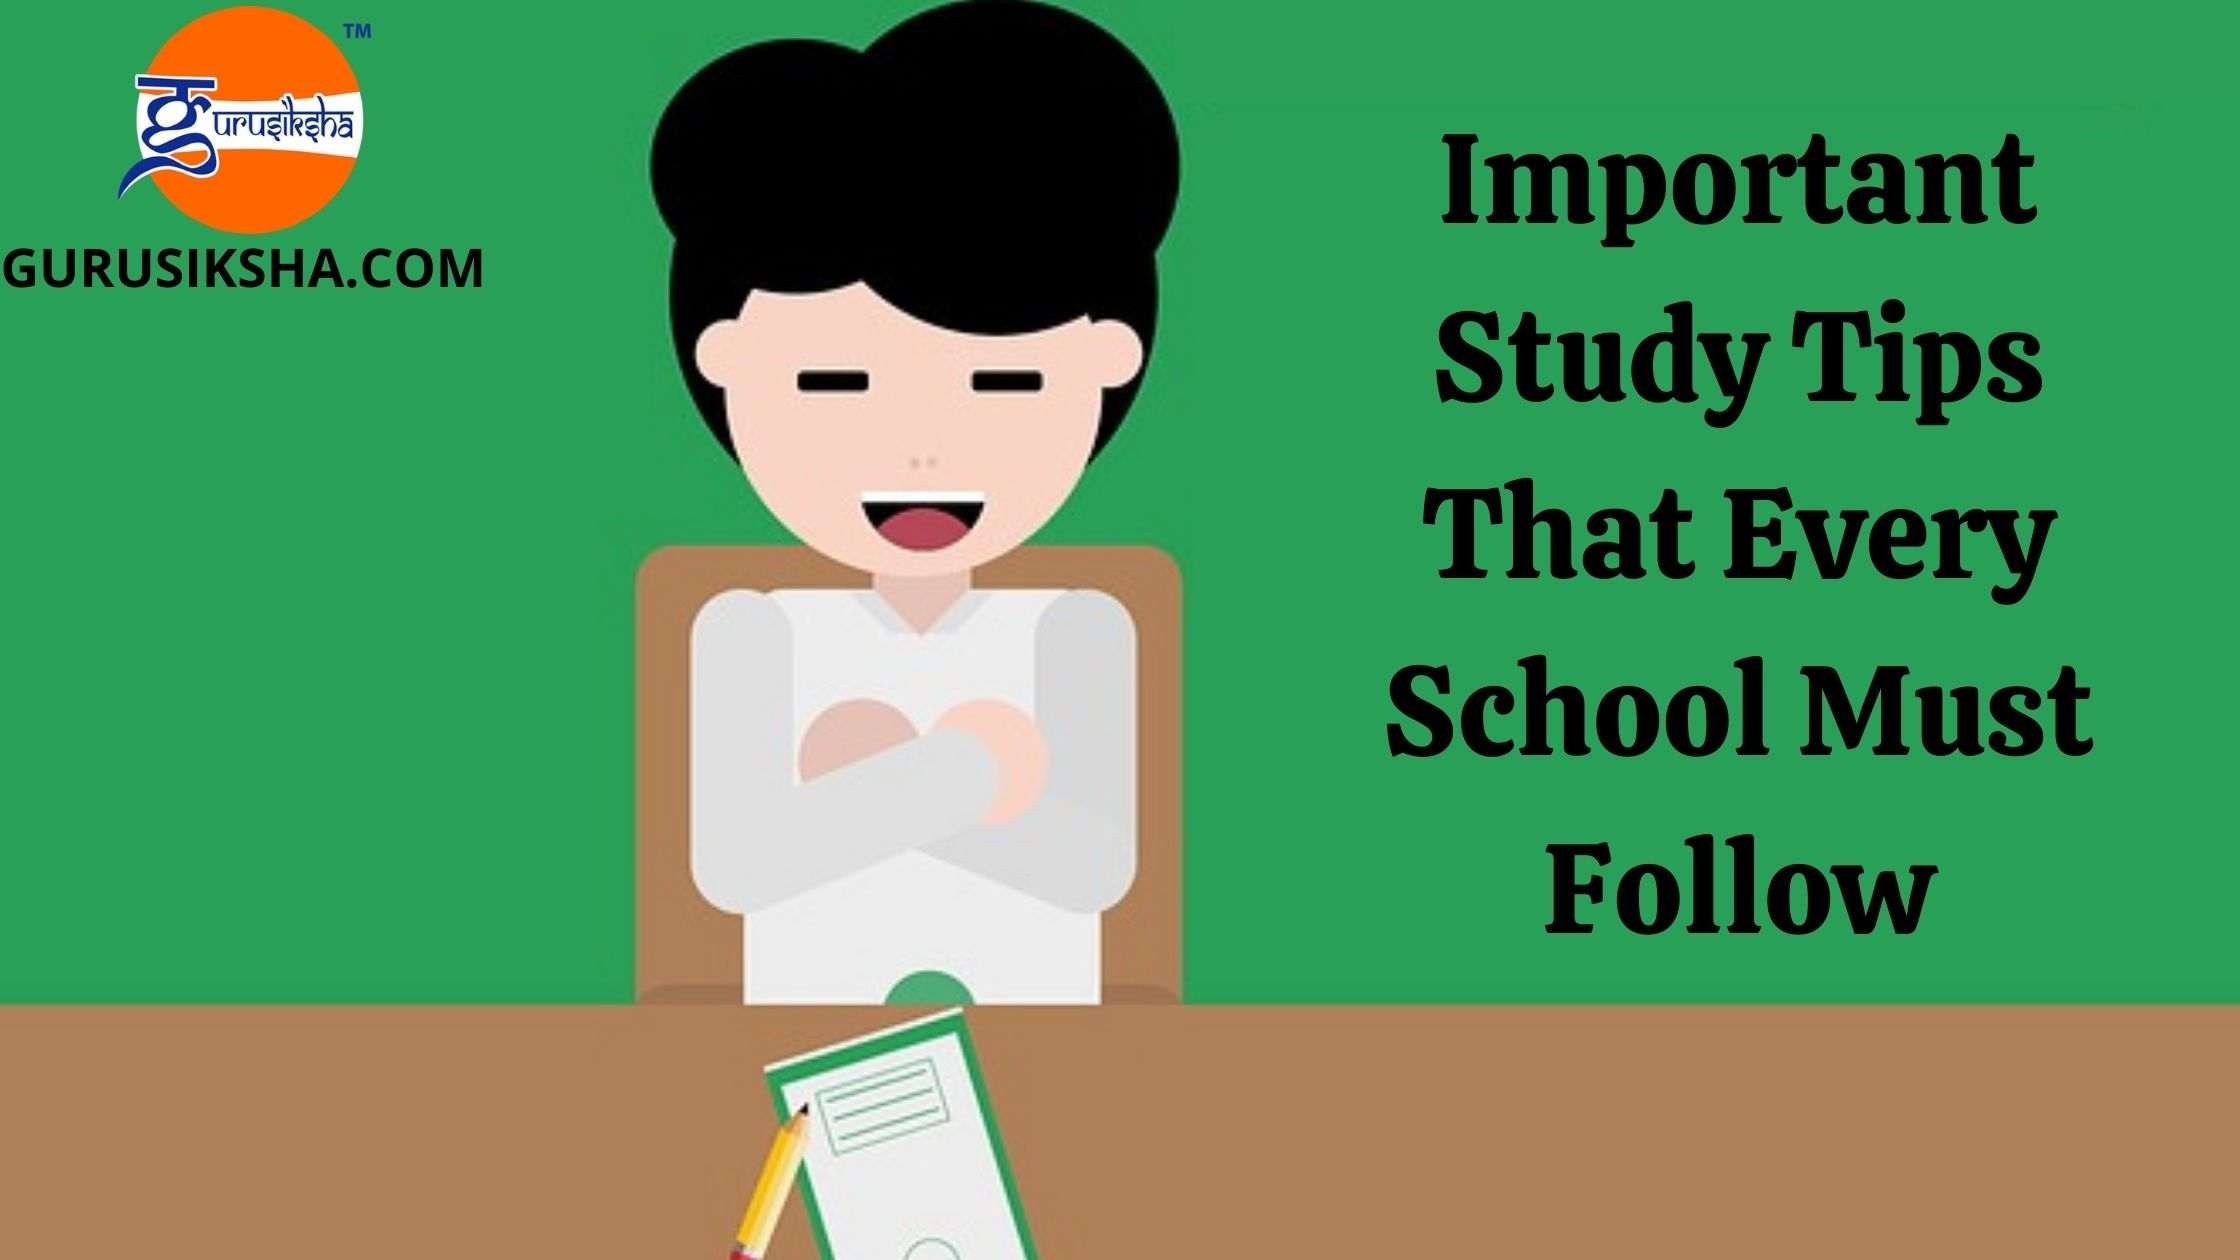 6 Most Important Study Tips That Every School Must Follow